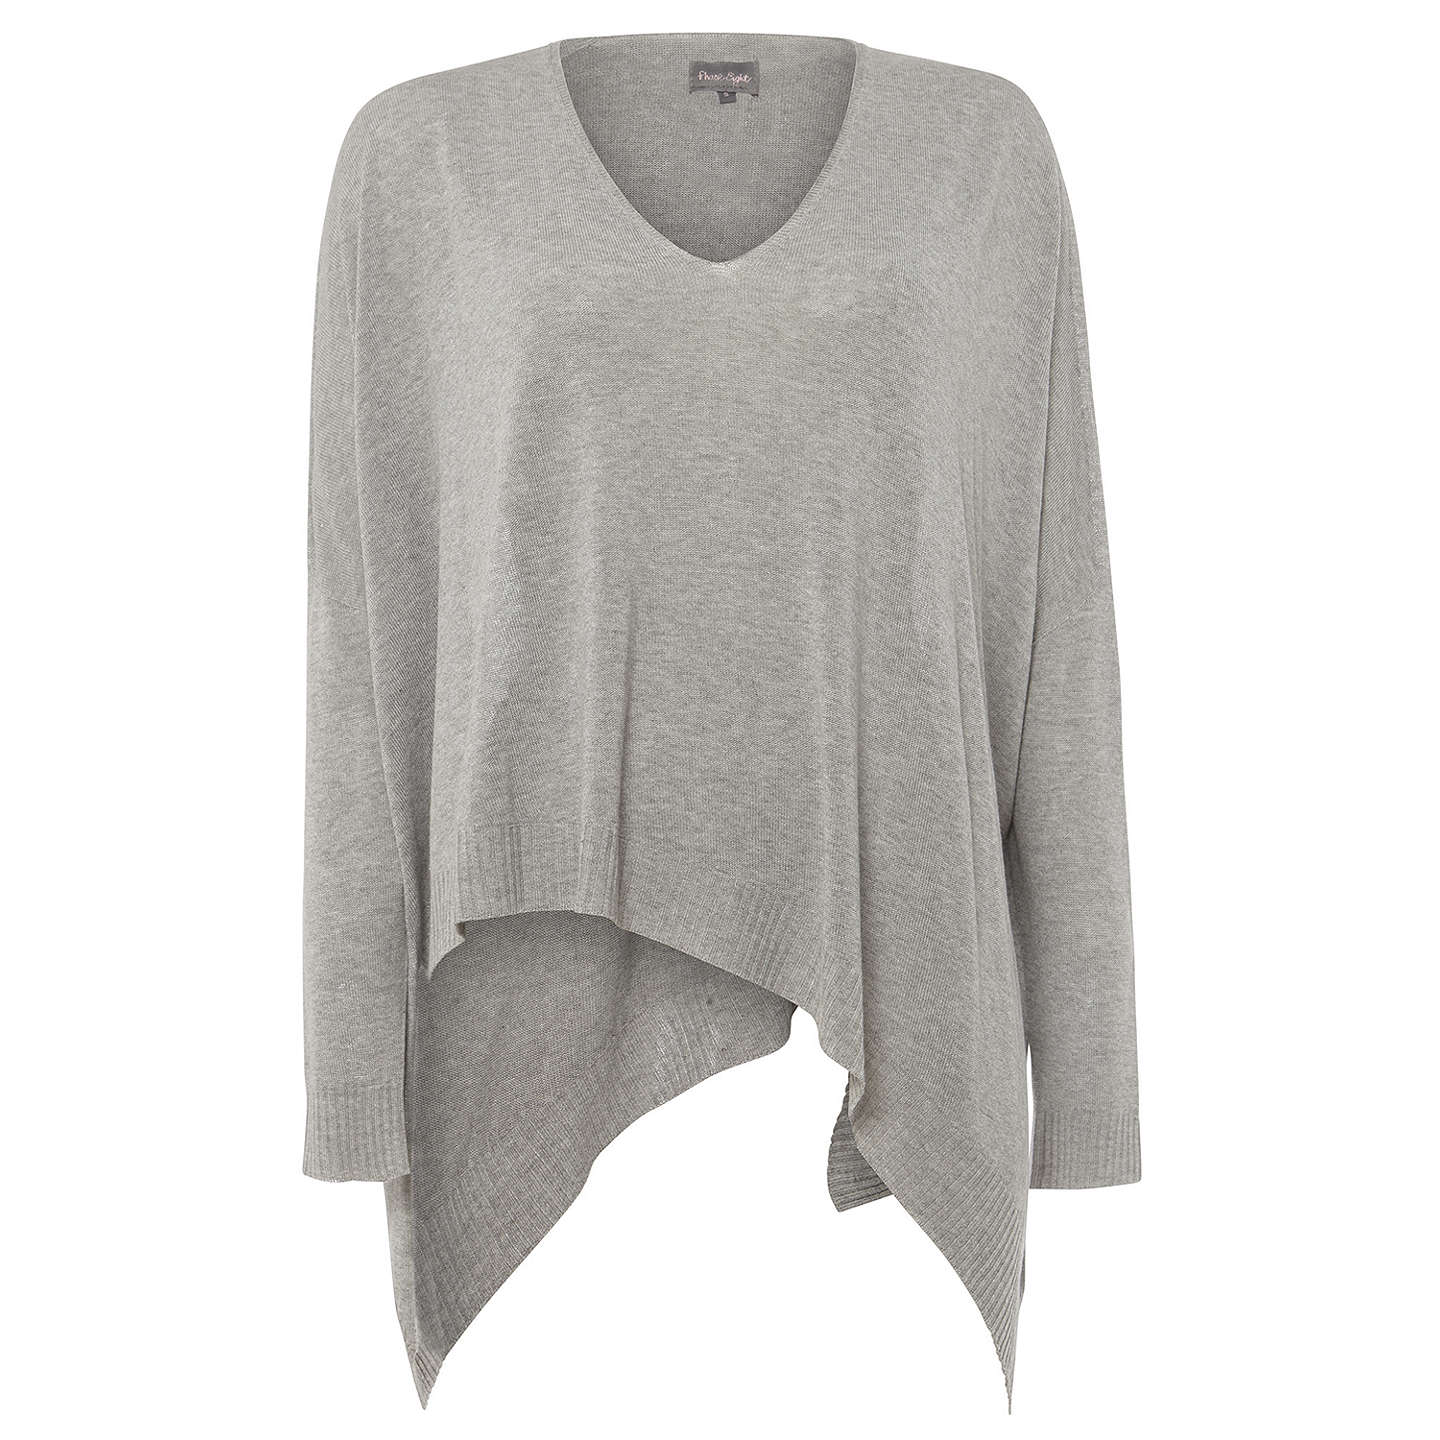 BuyPhase Eight Abaranne Asymmetric Hem Knitted Jumper, Silver, XS Online at johnlewis.com